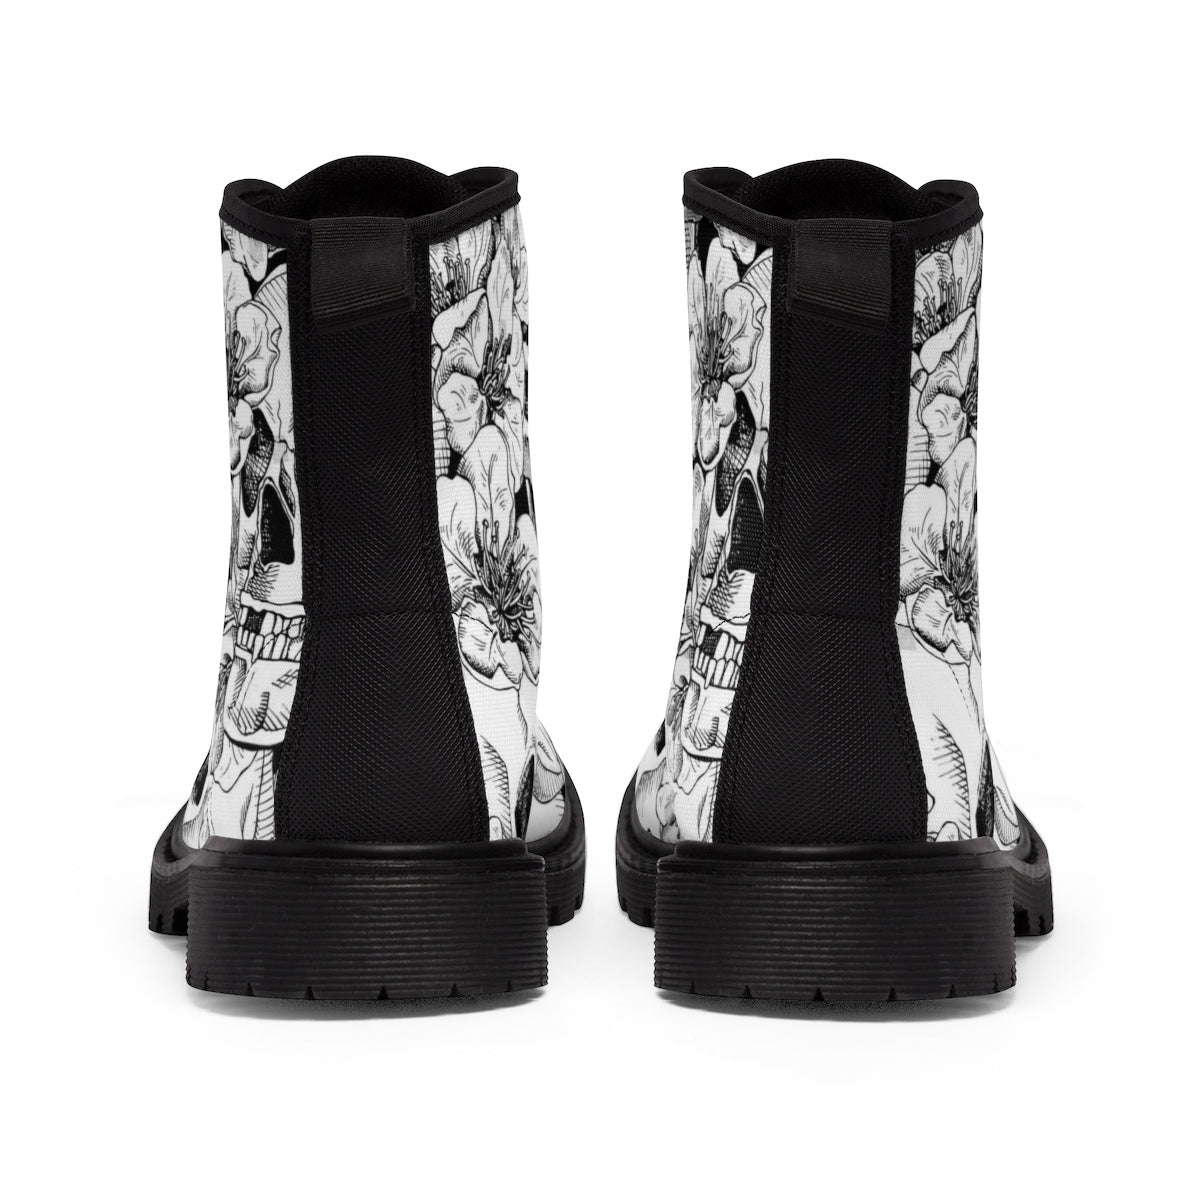 Personalize Men's Martin Boots